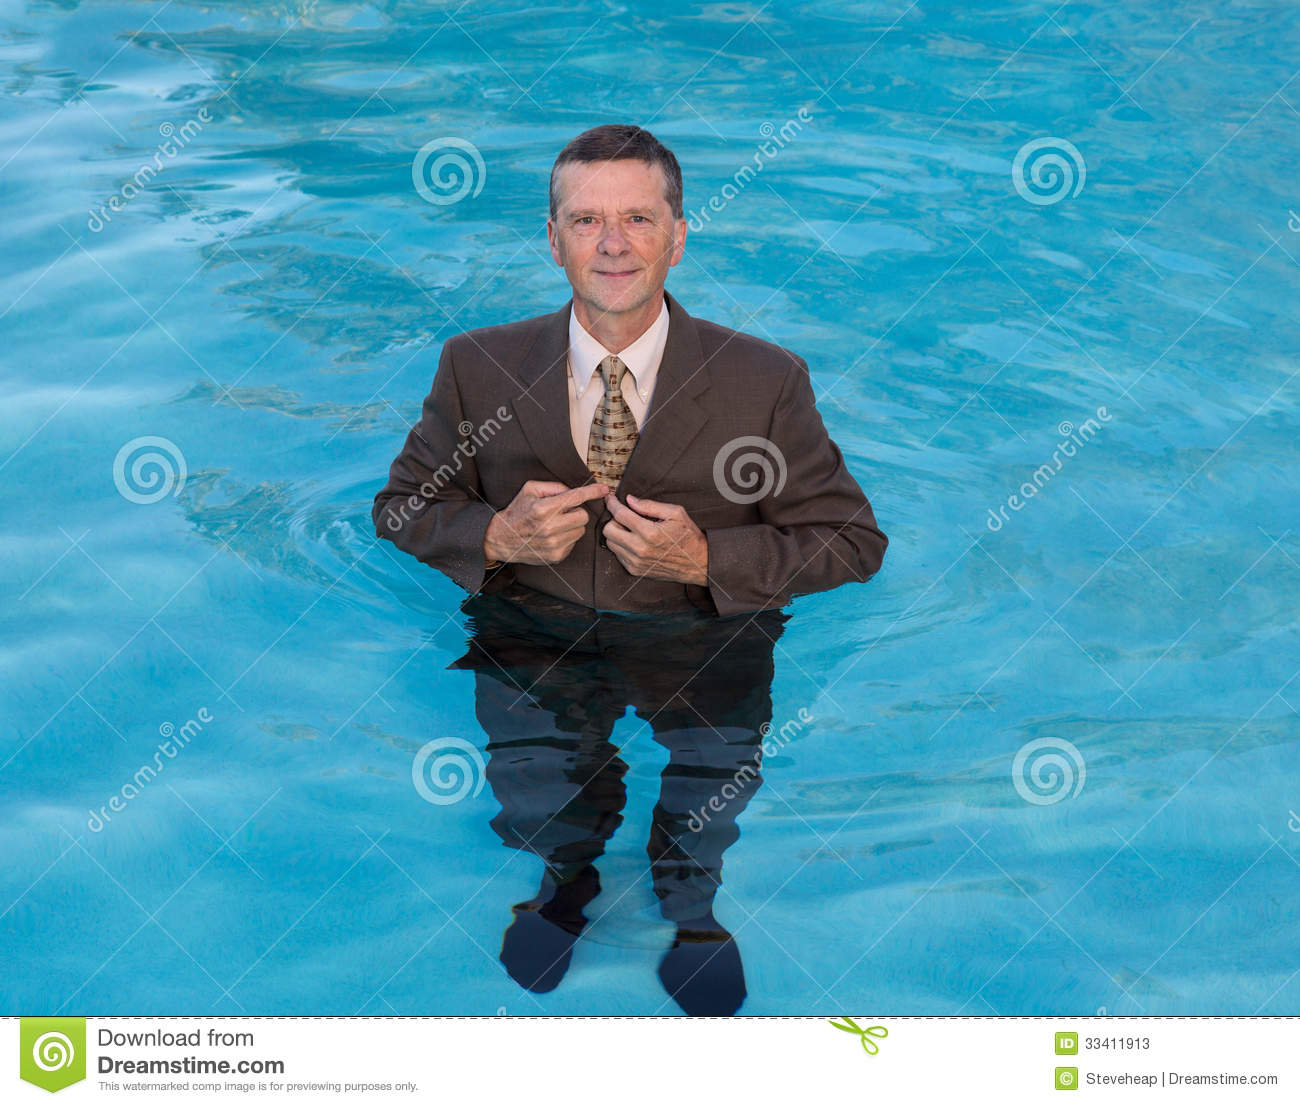 Olympic Swimming Pool In Person: Senior Business Man In Deep Water Stock Photos